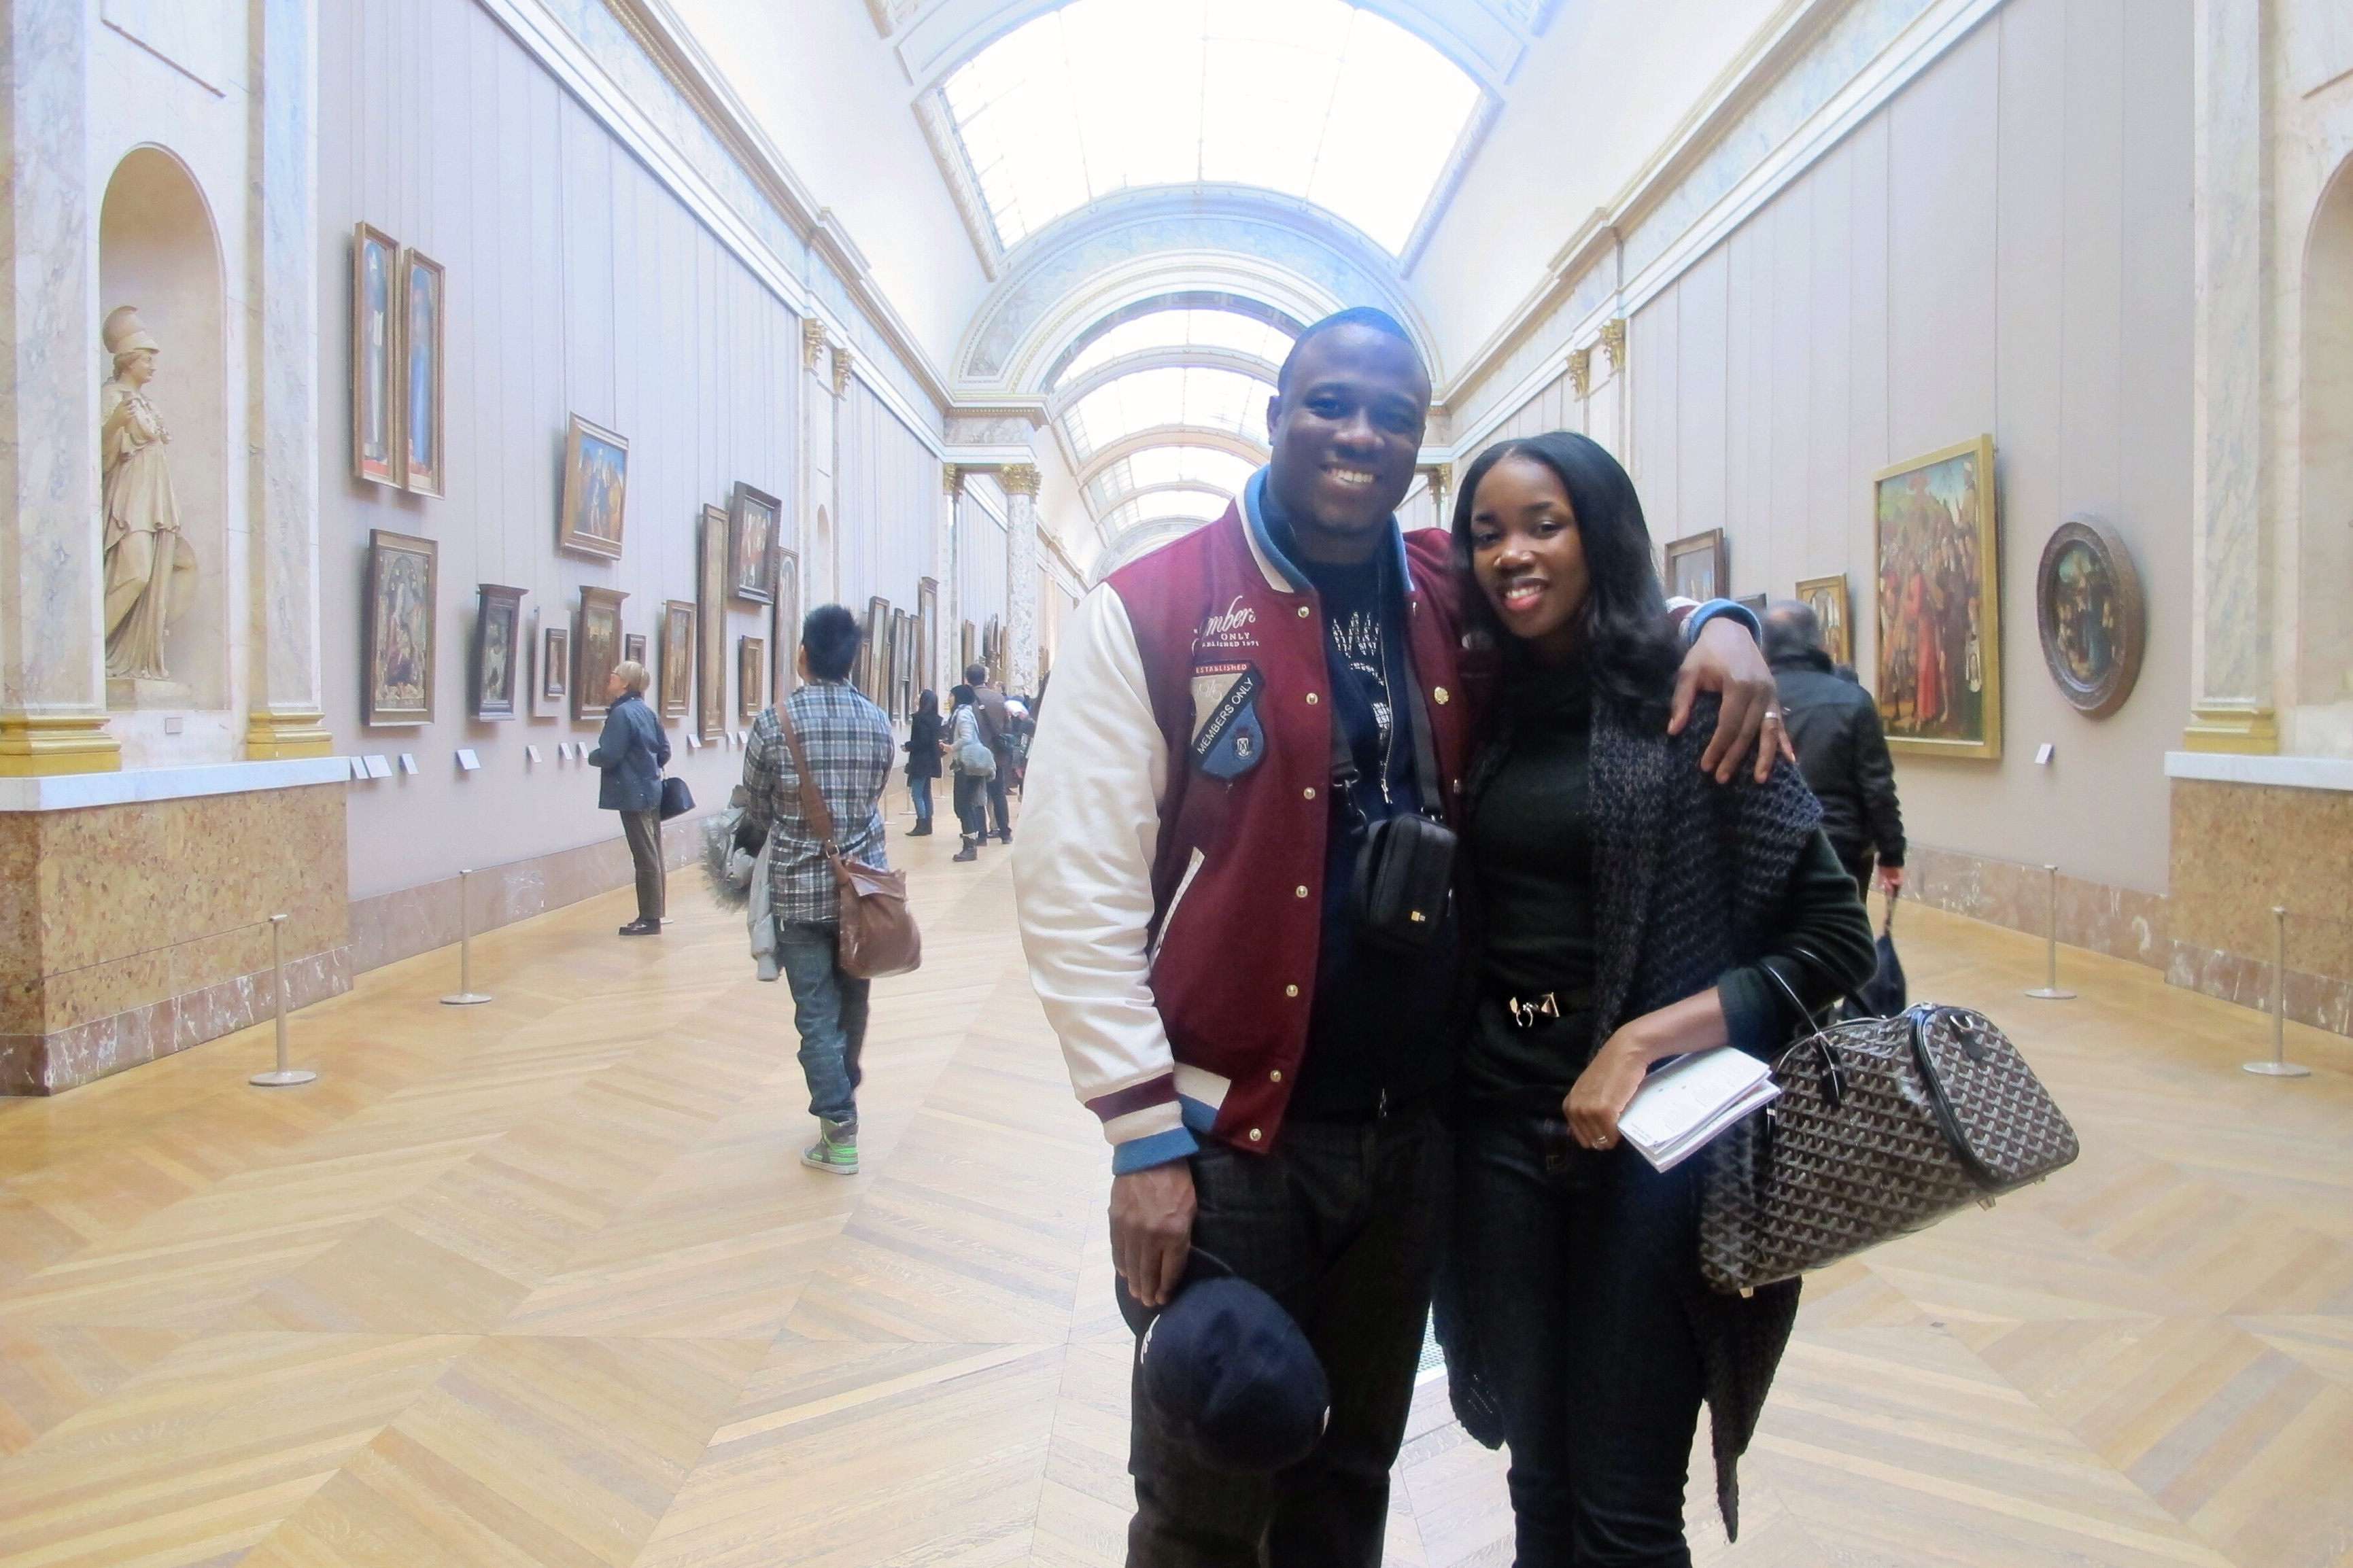 #theSemples at the Lourve